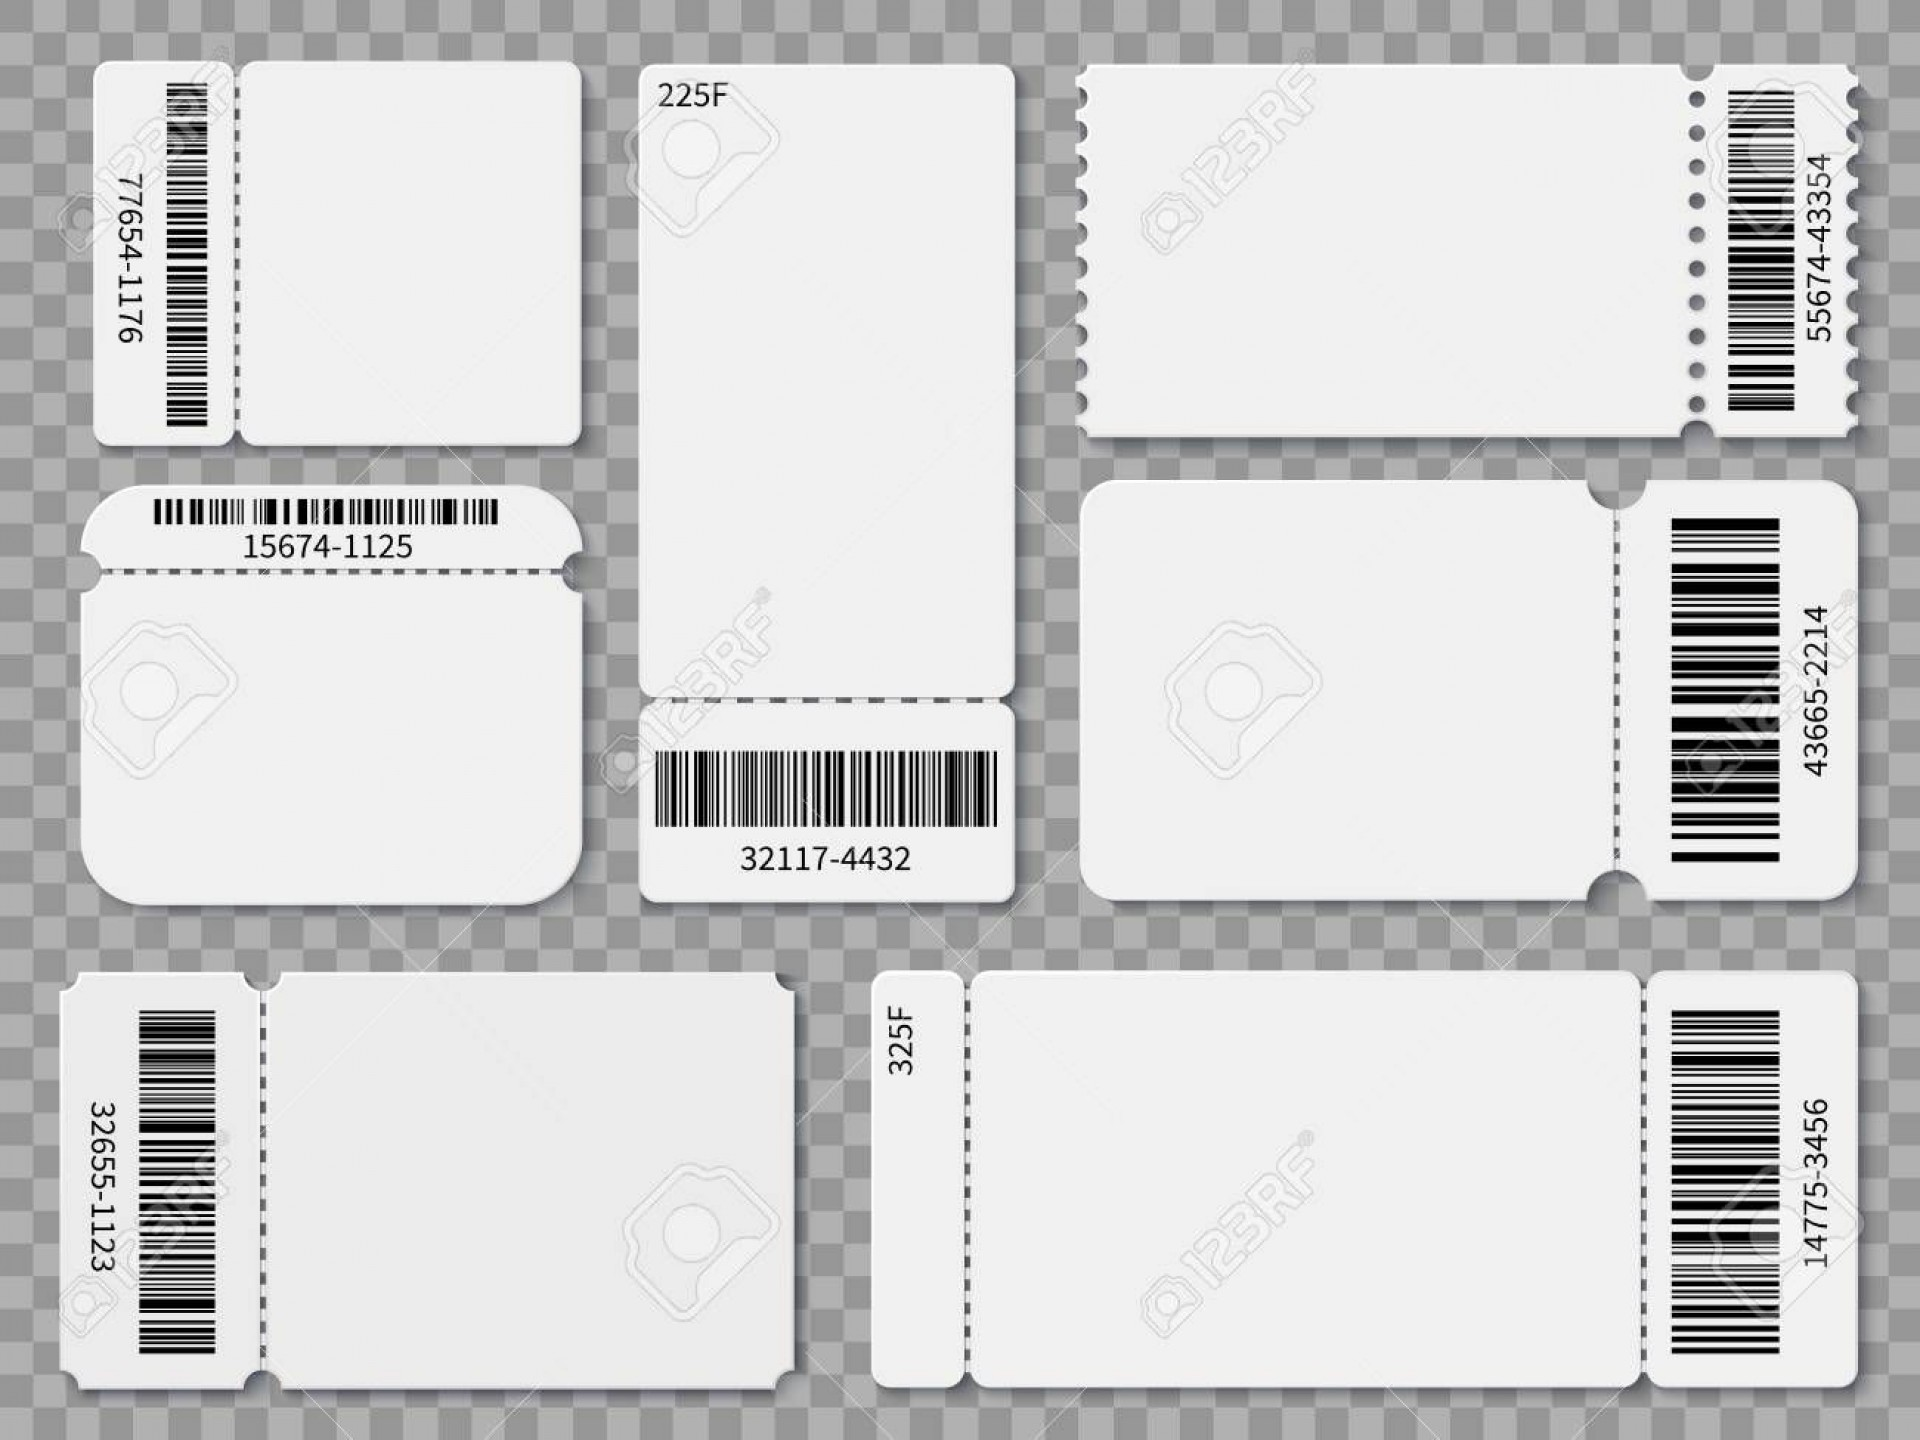 005 Excellent Free Printable Ticket Template Sample  Editable Airline Christma For Gift1920